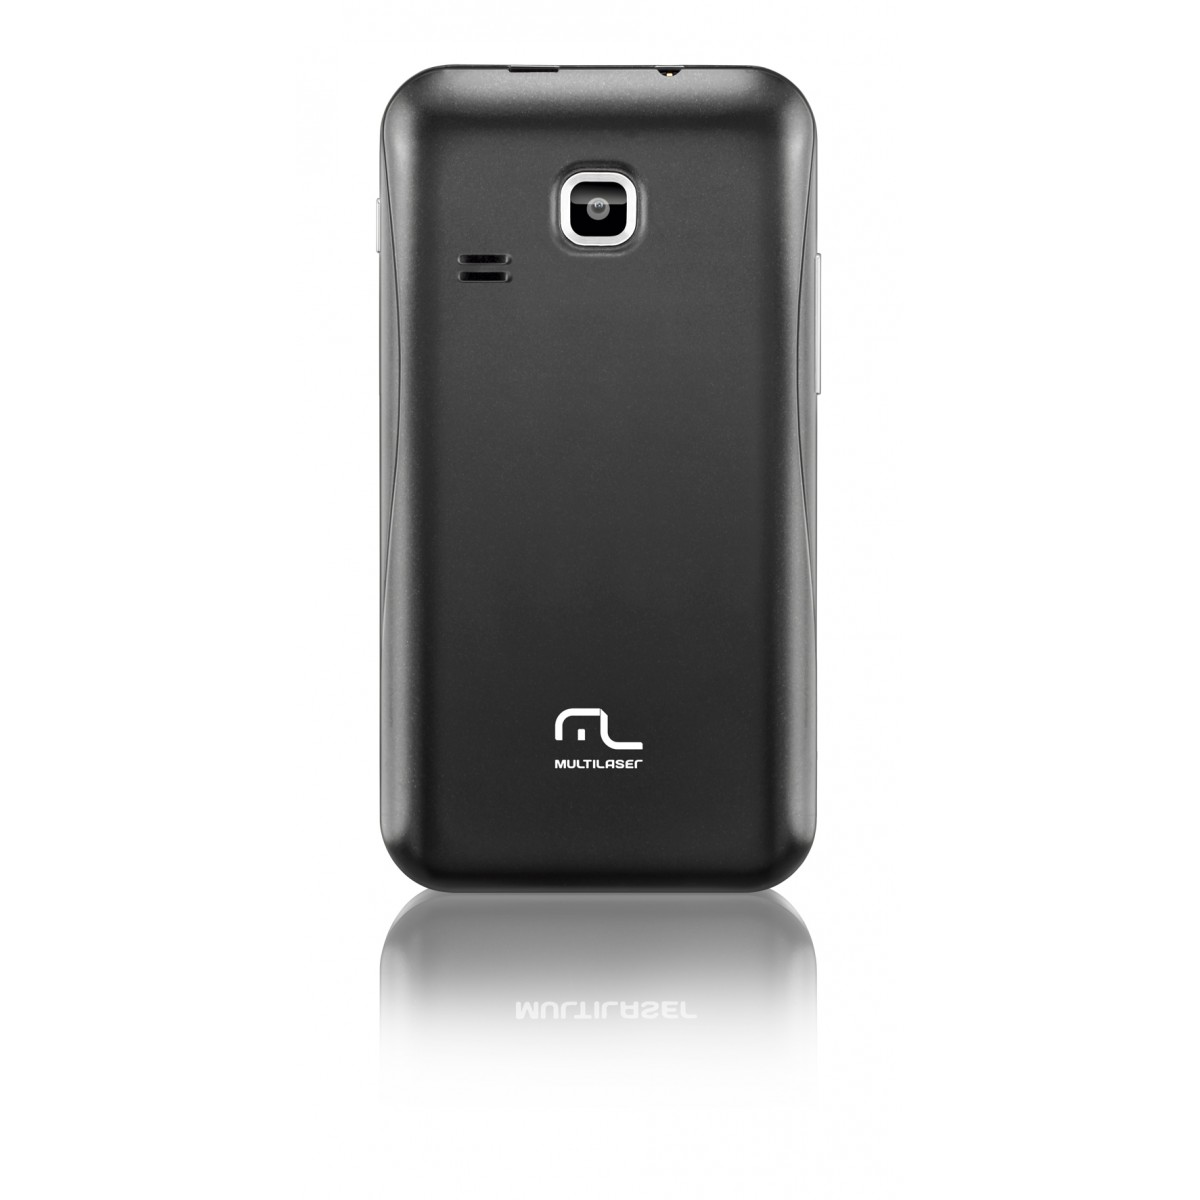 Smartphone Orion Dual Chip P3181 3G Android 2.3 Tela de 3.5 - Multilaser